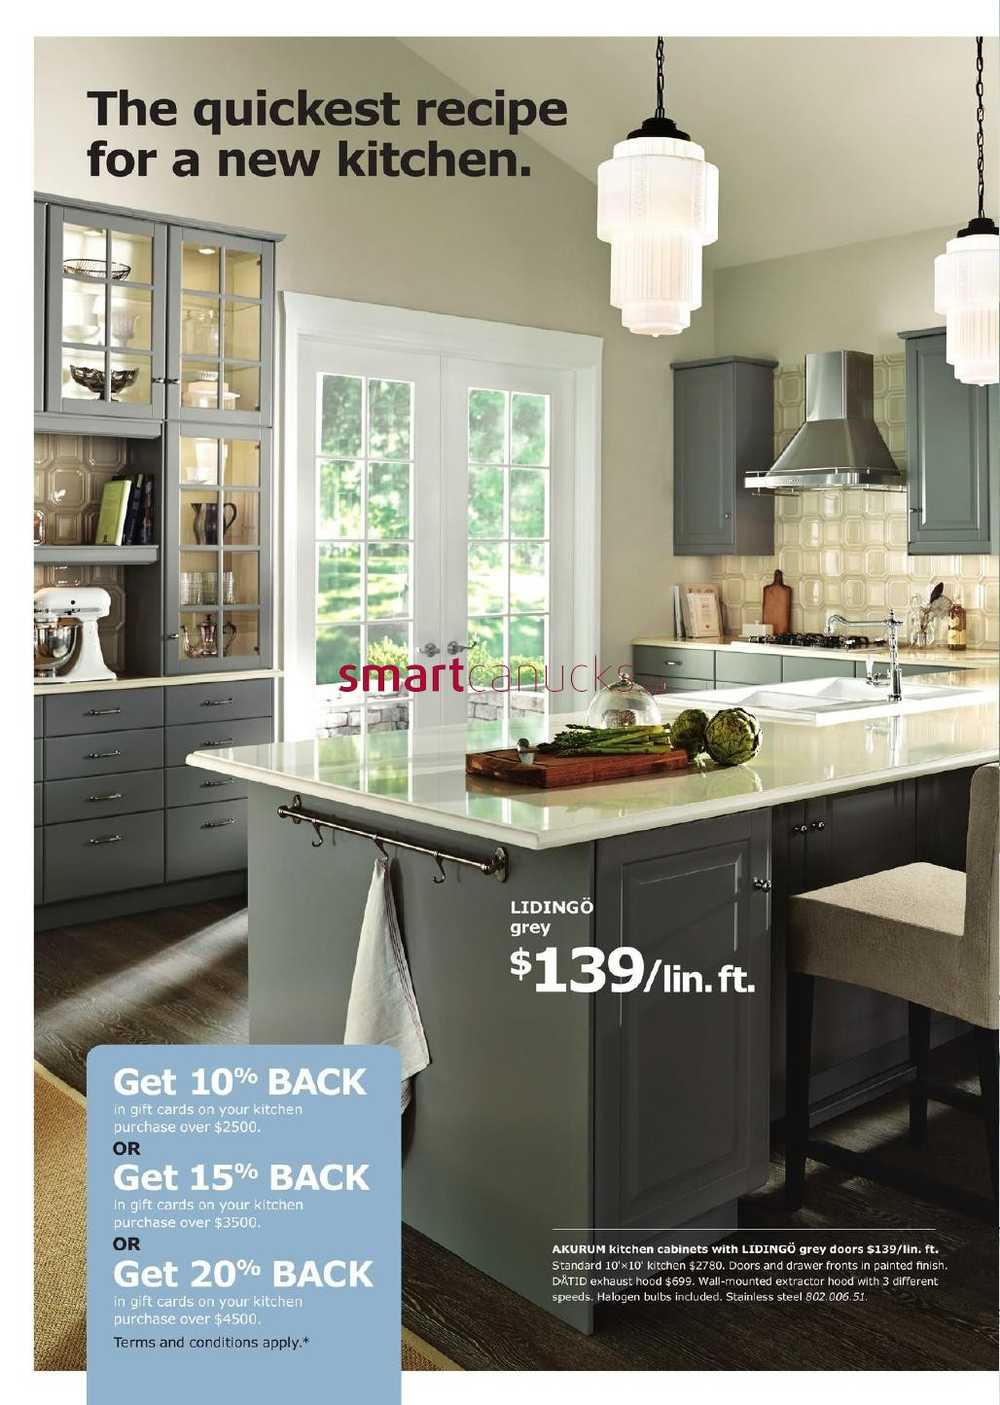 Interior Ikea Kitchen Event ikea kitchen event flyer february 24 to march more flyers